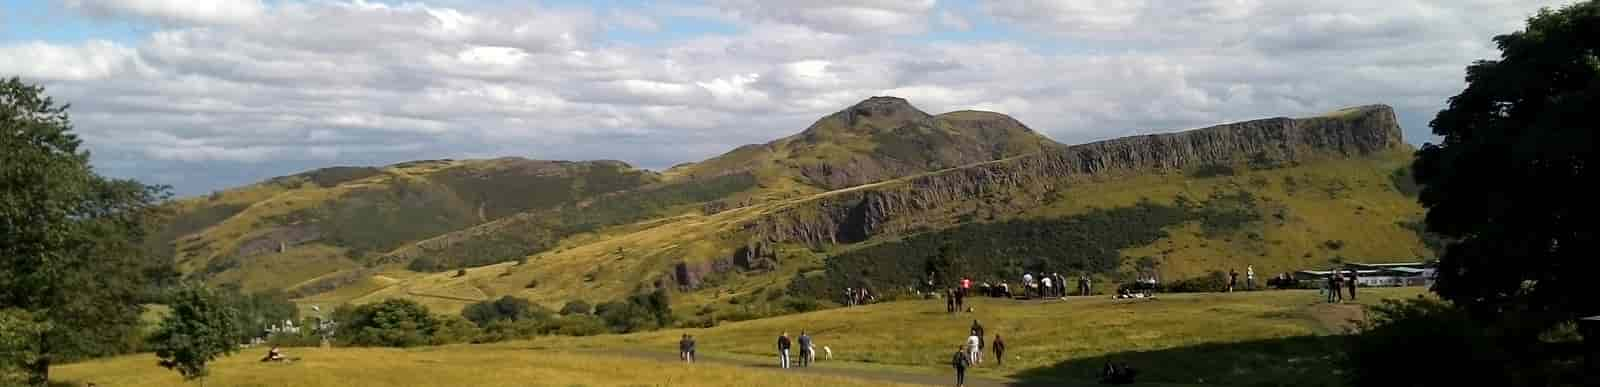 Edinburgh, Scotland - Arthur's Seat